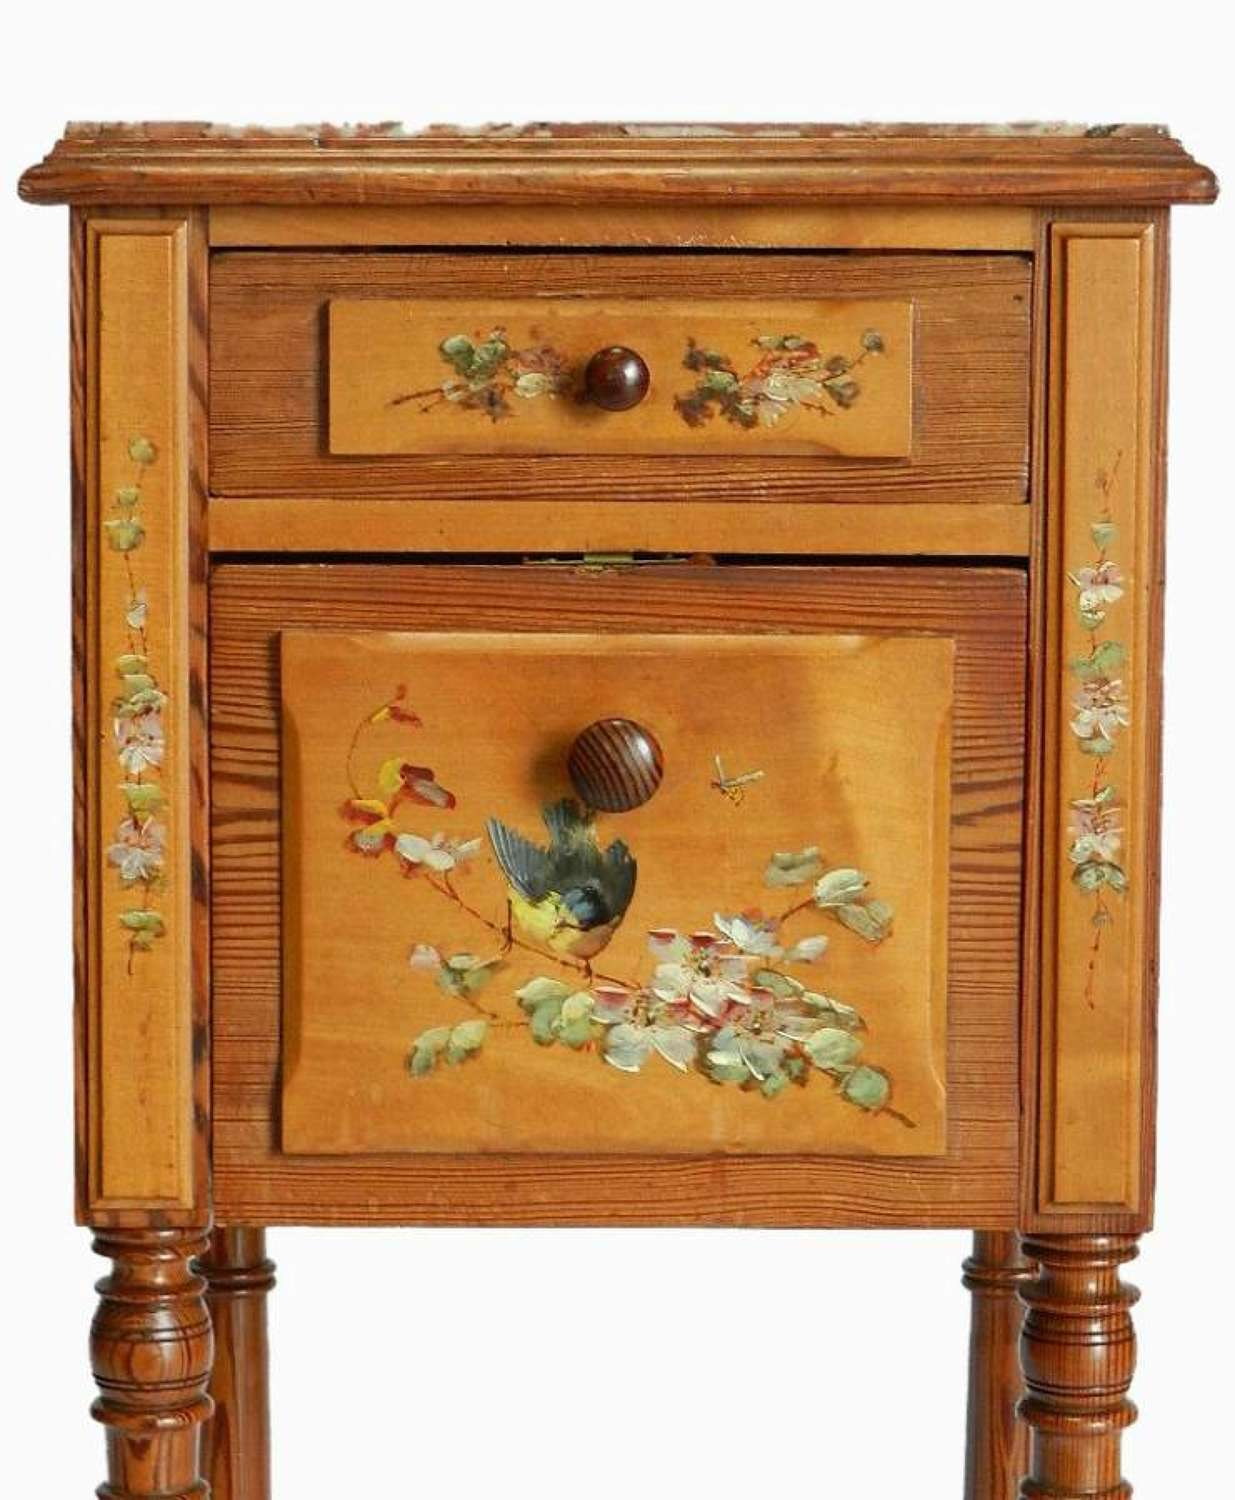 French Art Nouveau era Bedside Table Nightstand Cabinet original paint